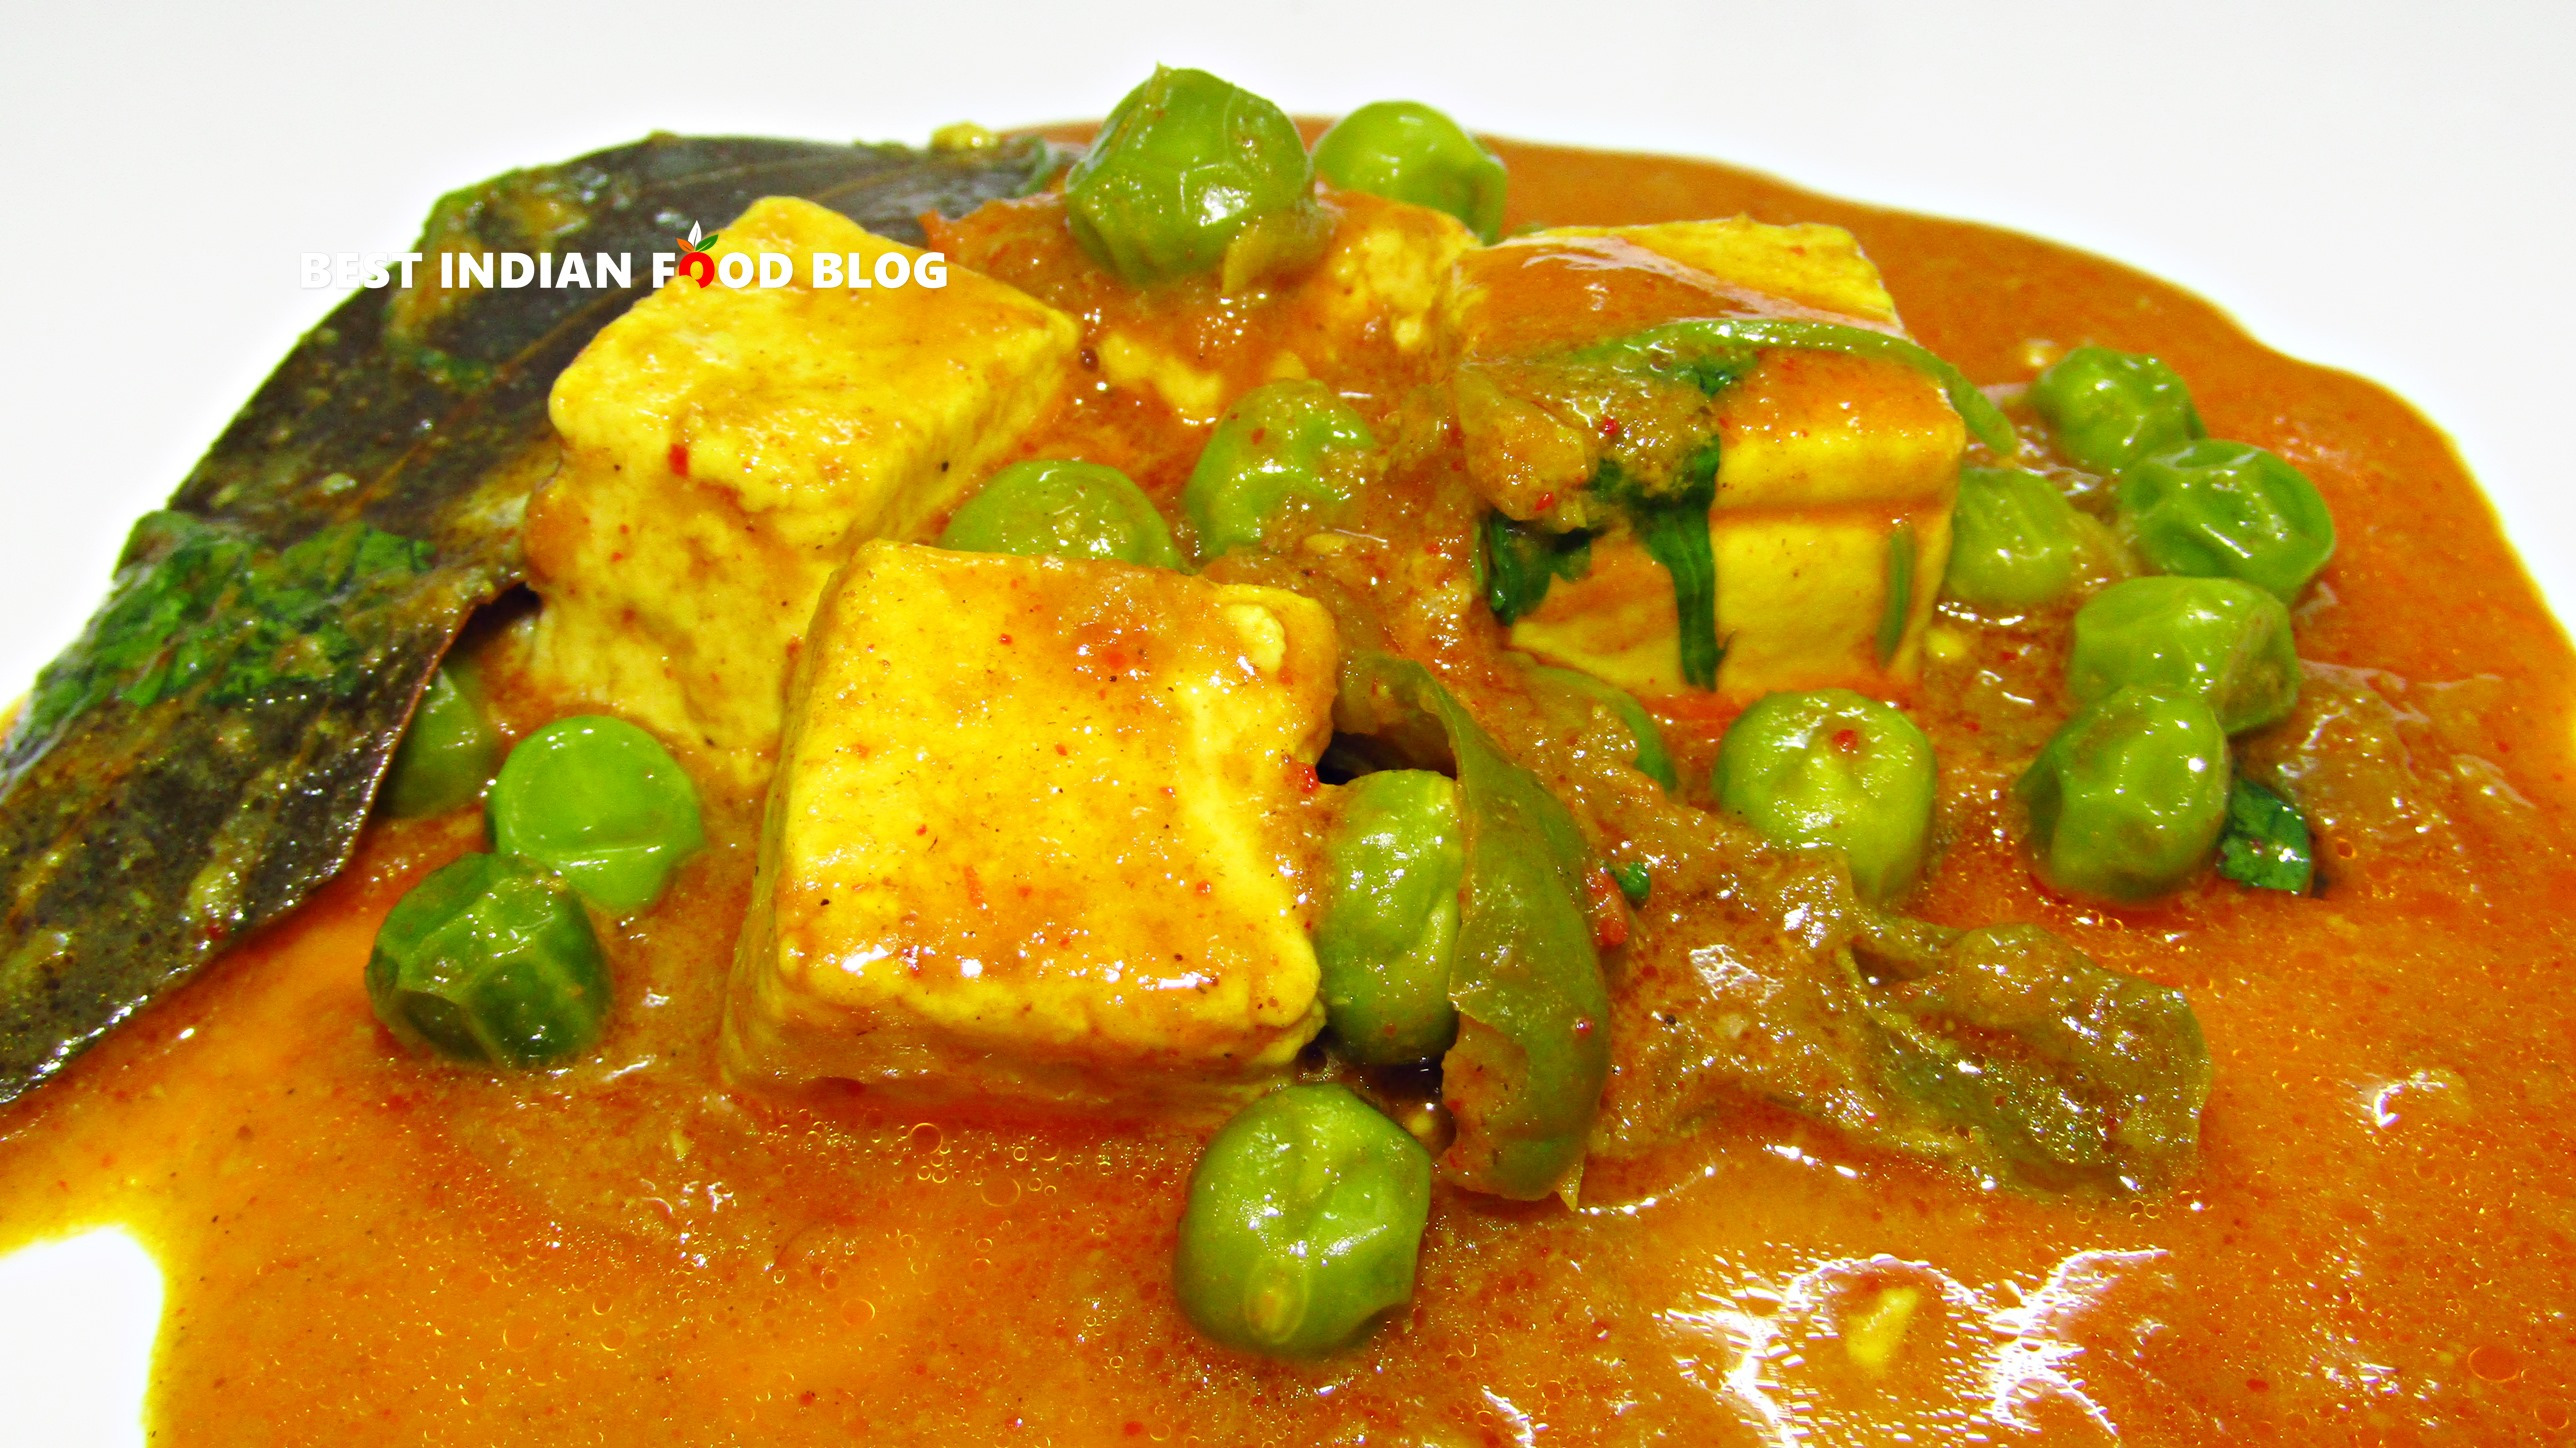 Matar Paneer from Chandigarh, India | Best Indian Food Blog | Cottage Cheese Pea recipe